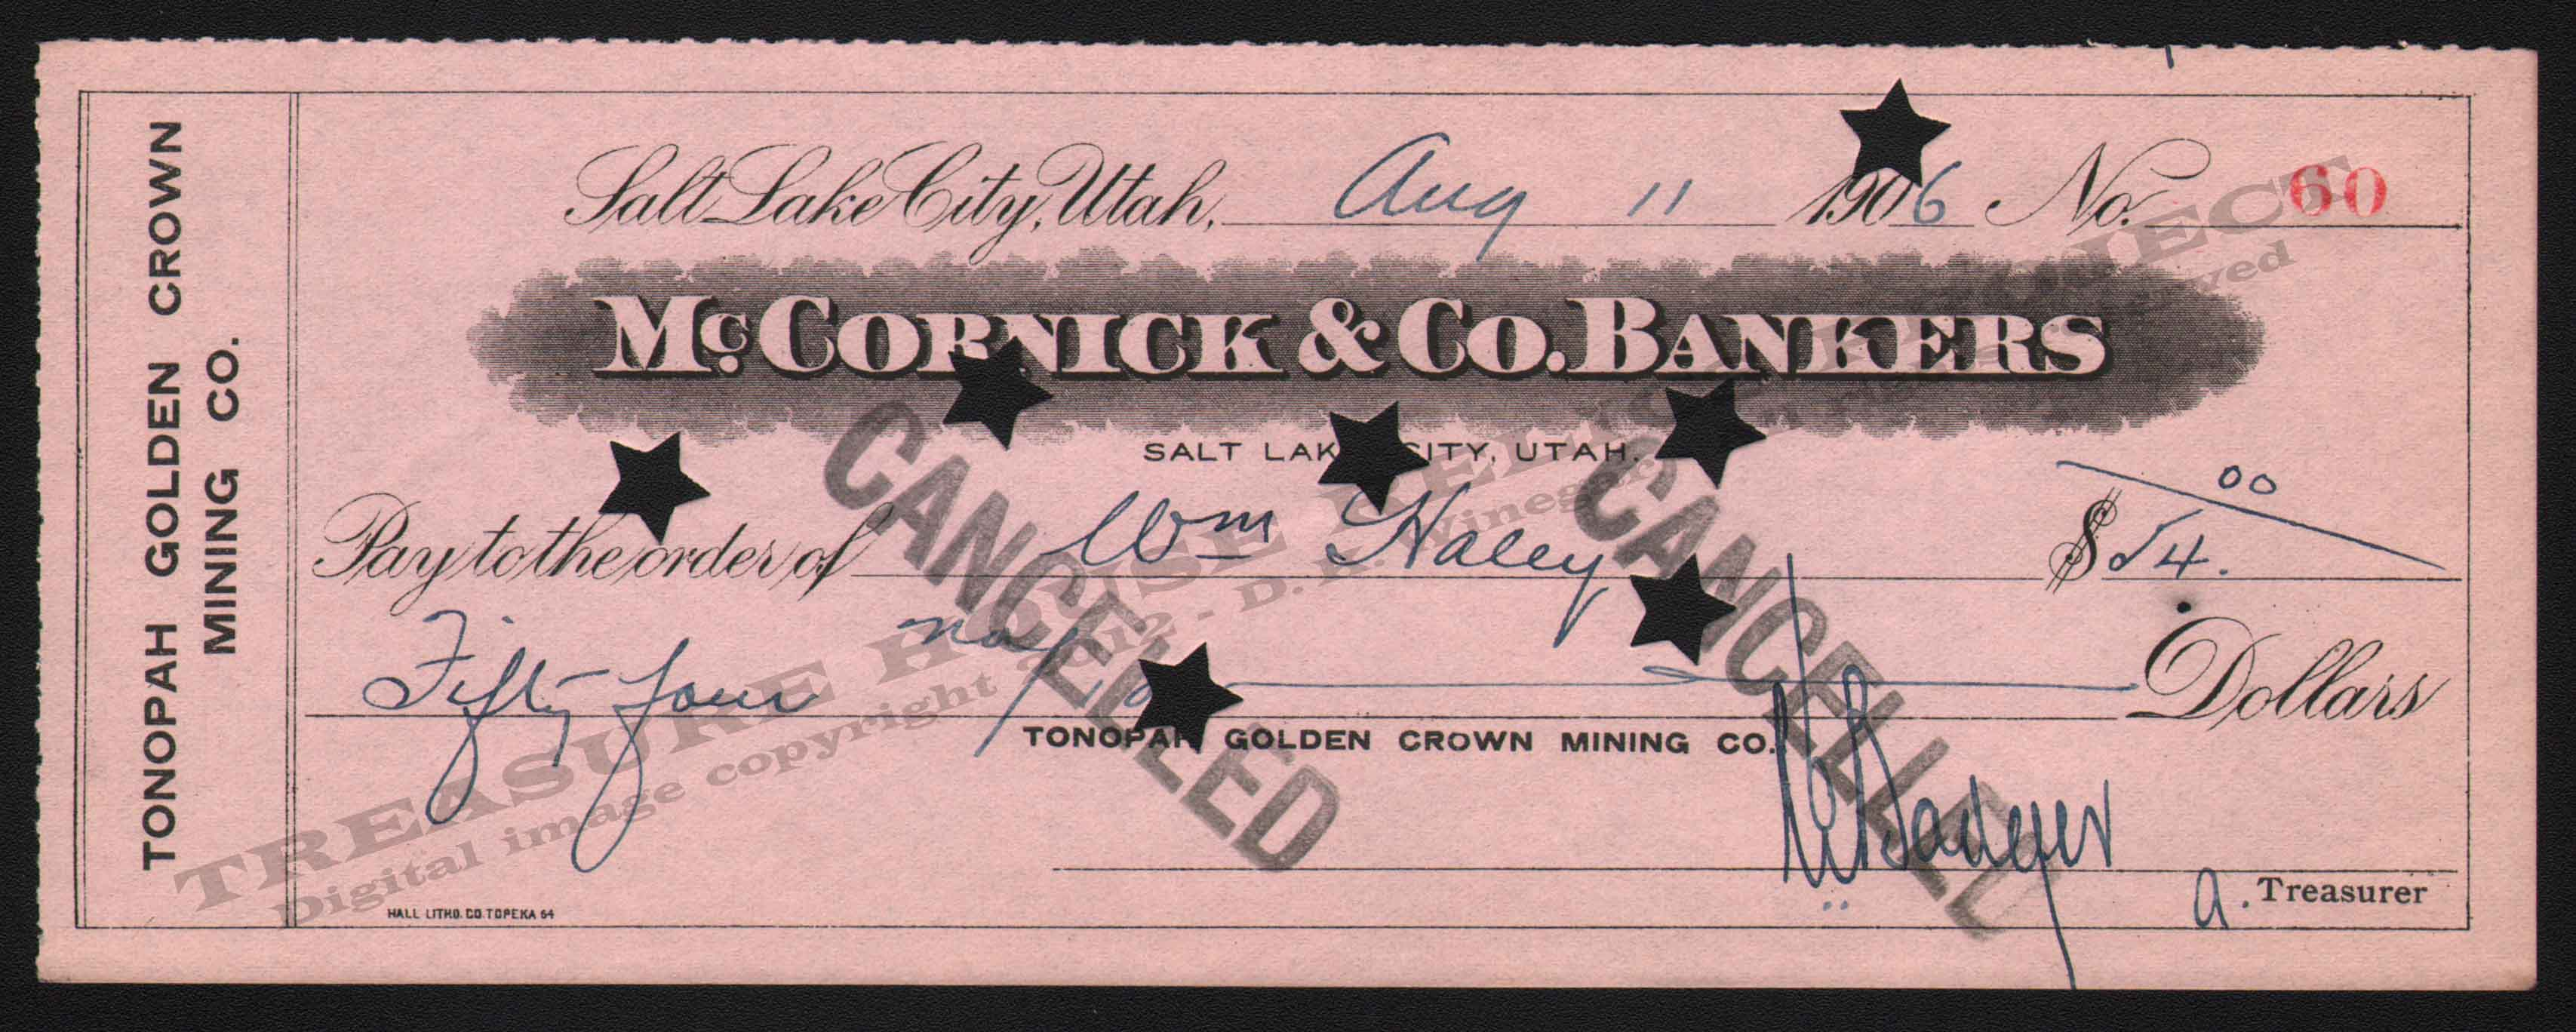 LETTERHEAD/CHECK_GOLDEN_CROWN_MINING_CO_60_1906_400_crop_emboss.jpg